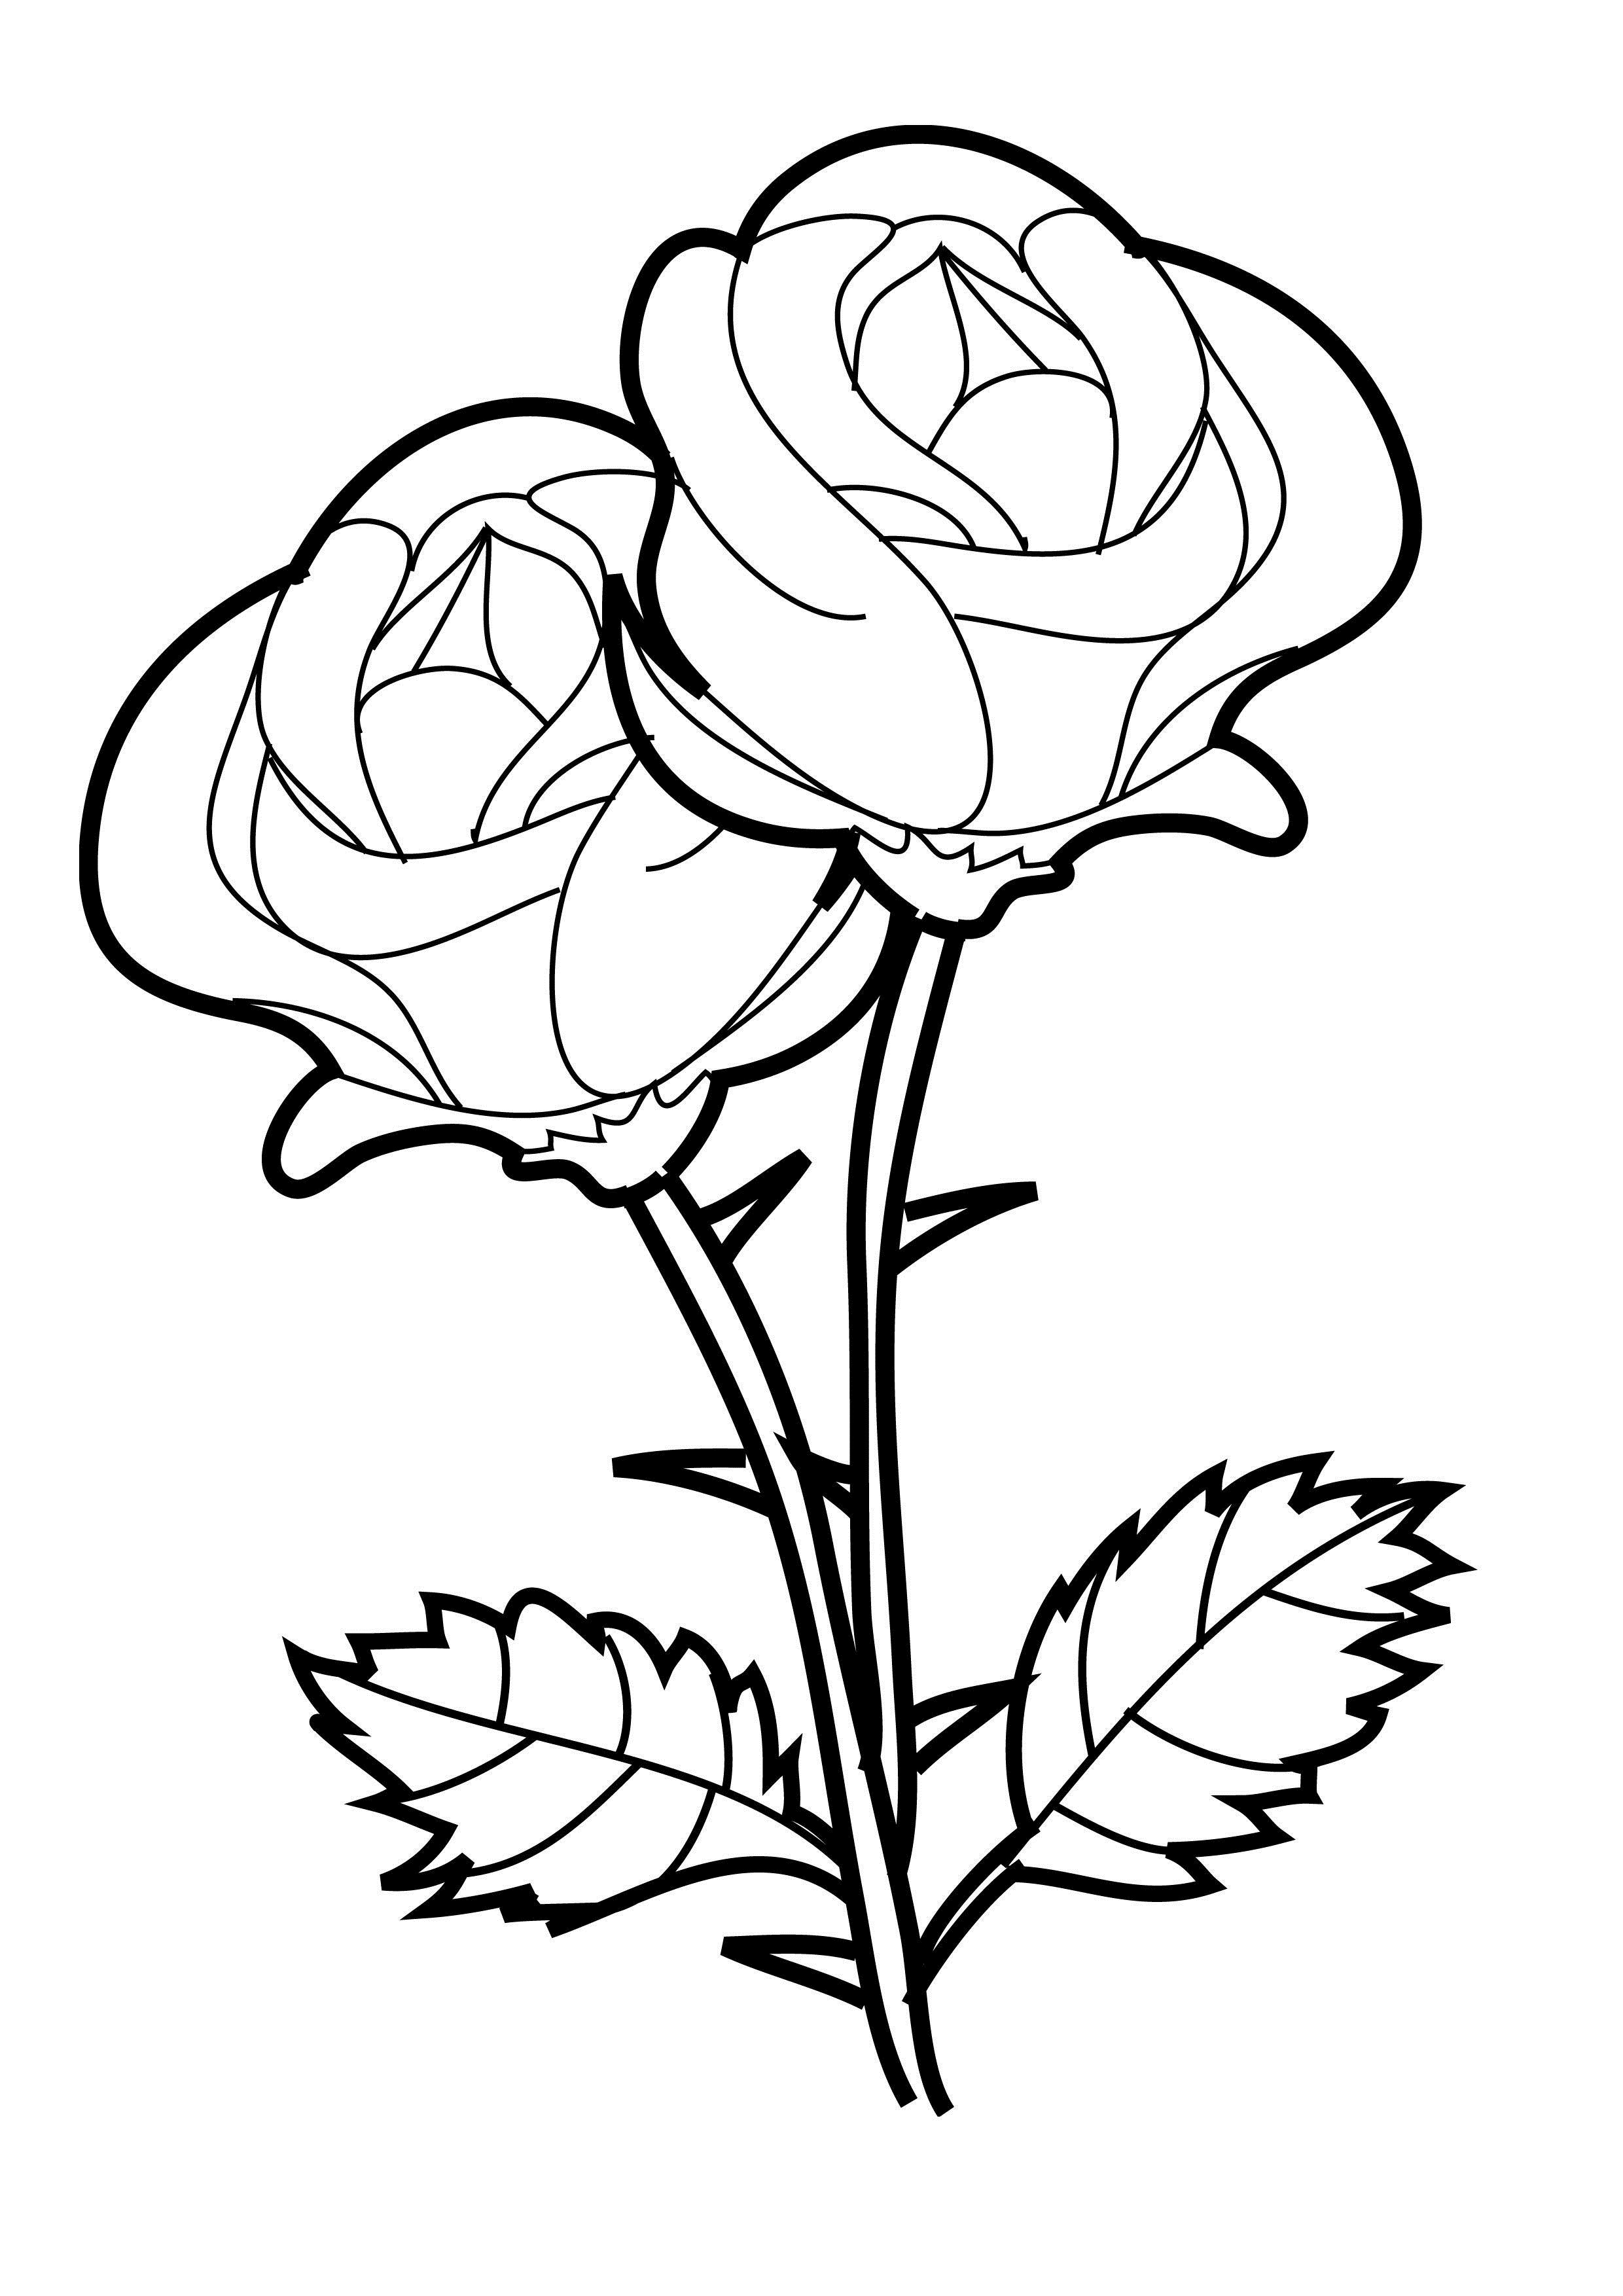 free coloring pages of flowers dahlia flower coloring pages download and print dahlia coloring flowers free pages of